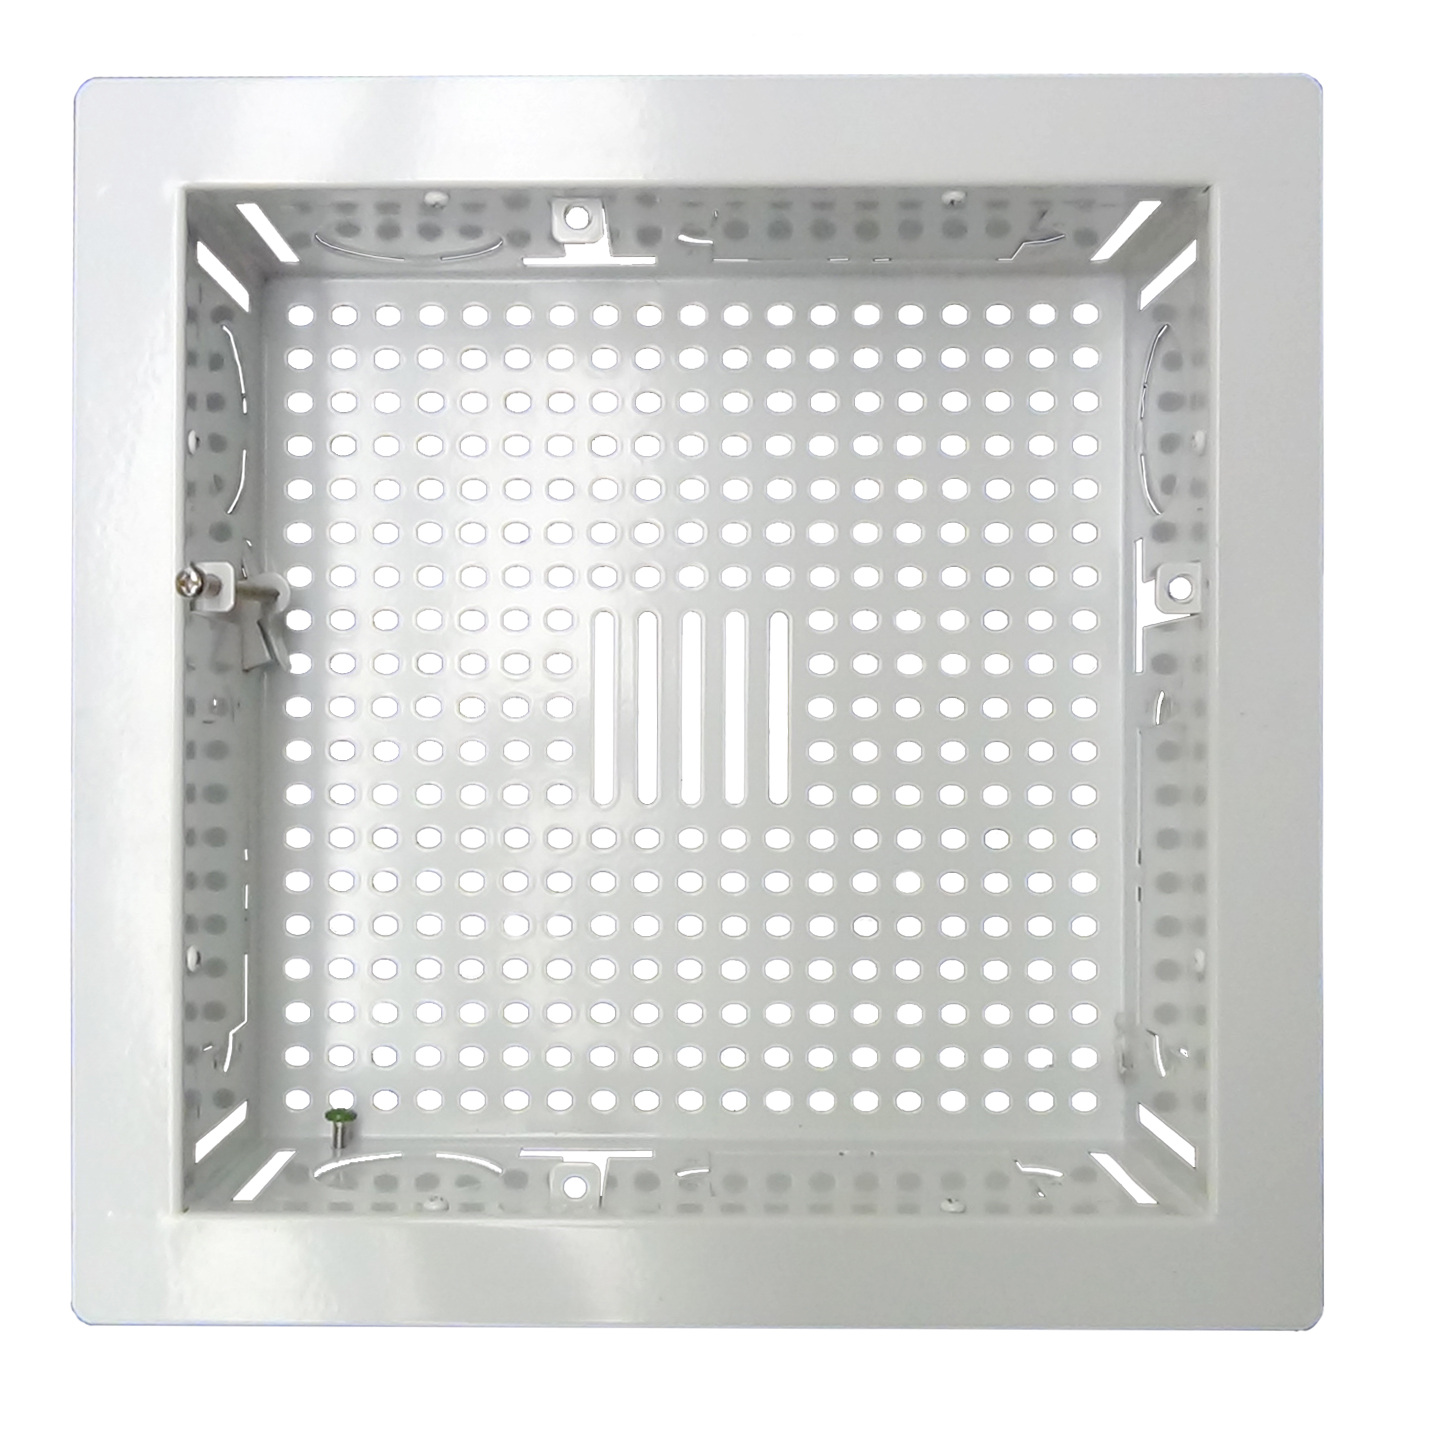 """DCTVBB * WHITE DIRECTCONNECT FLAT PANEL BACK BOX MOUNTING GRID FOR TV ACCESSORIES NEW AND EXISTING CONSTRUCTION 10"""" x 10"""""""